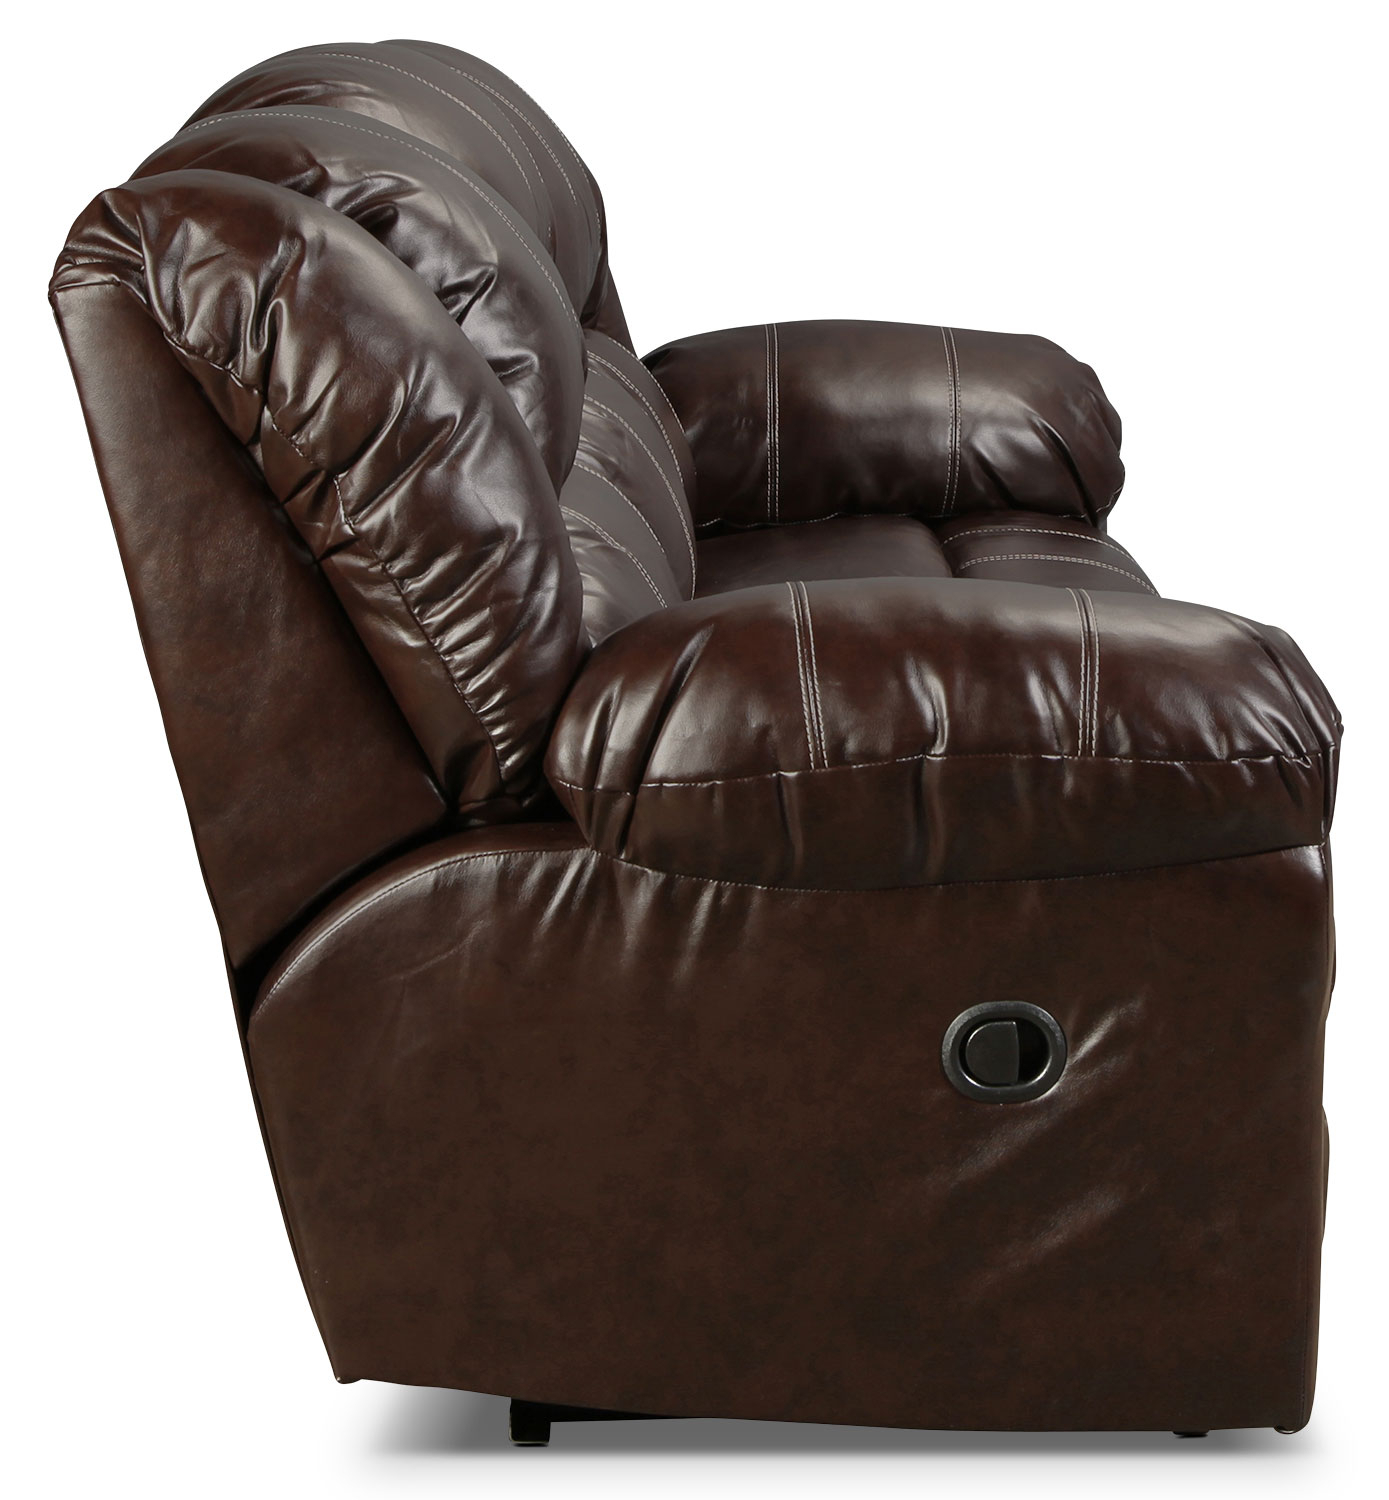 Decker Reclining Sofa – Brown | Regarding Decker Ii Fabric Swivel Rocker Recliners (Image 6 of 20)